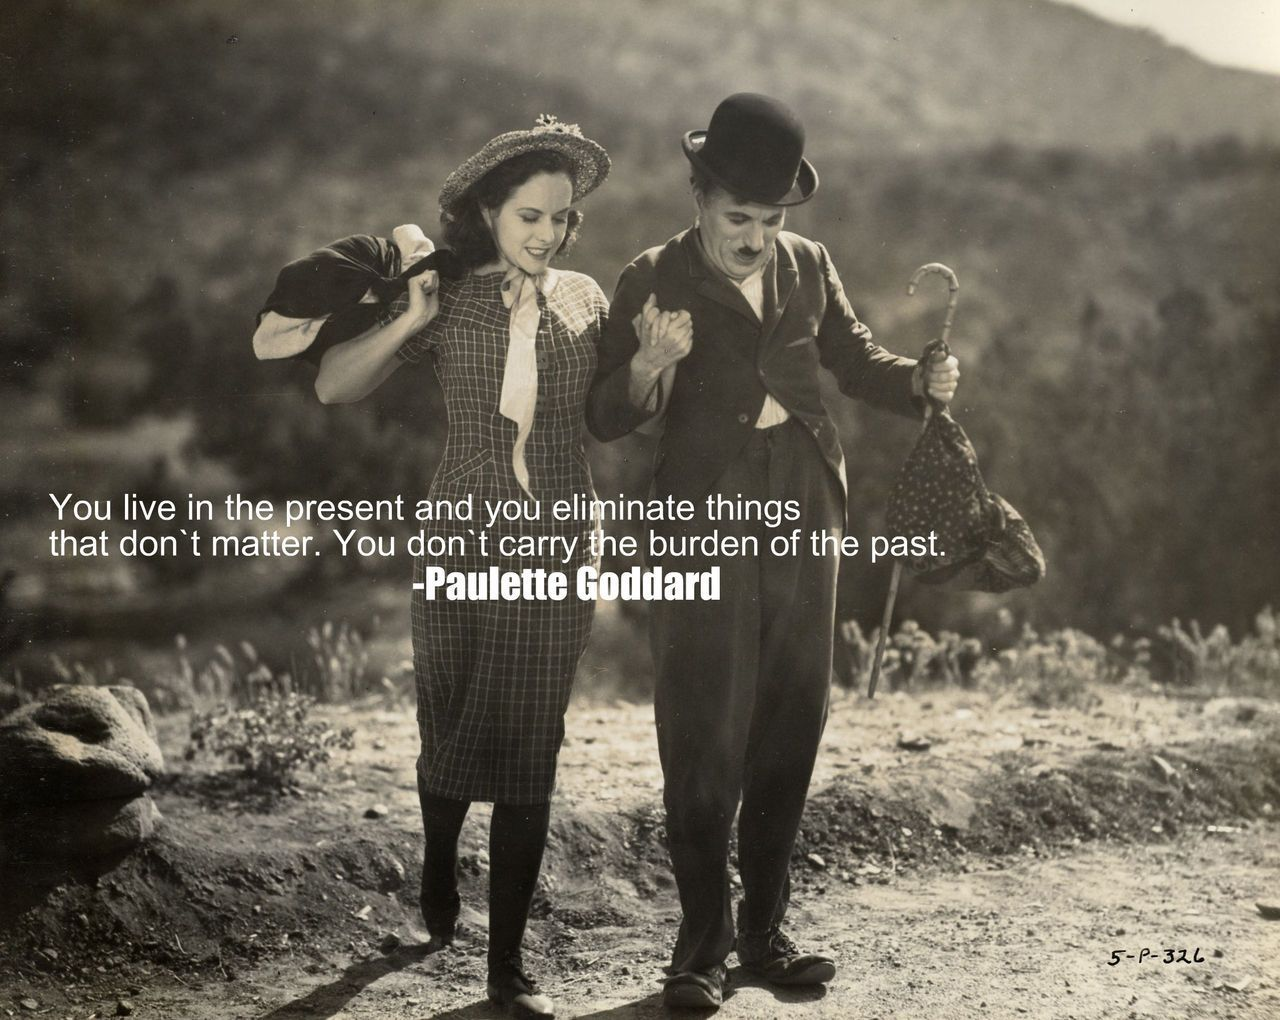 Quotes About Time Movies 154 Popcorn On Pinterest Short Circuit 2 The Princess Bride And